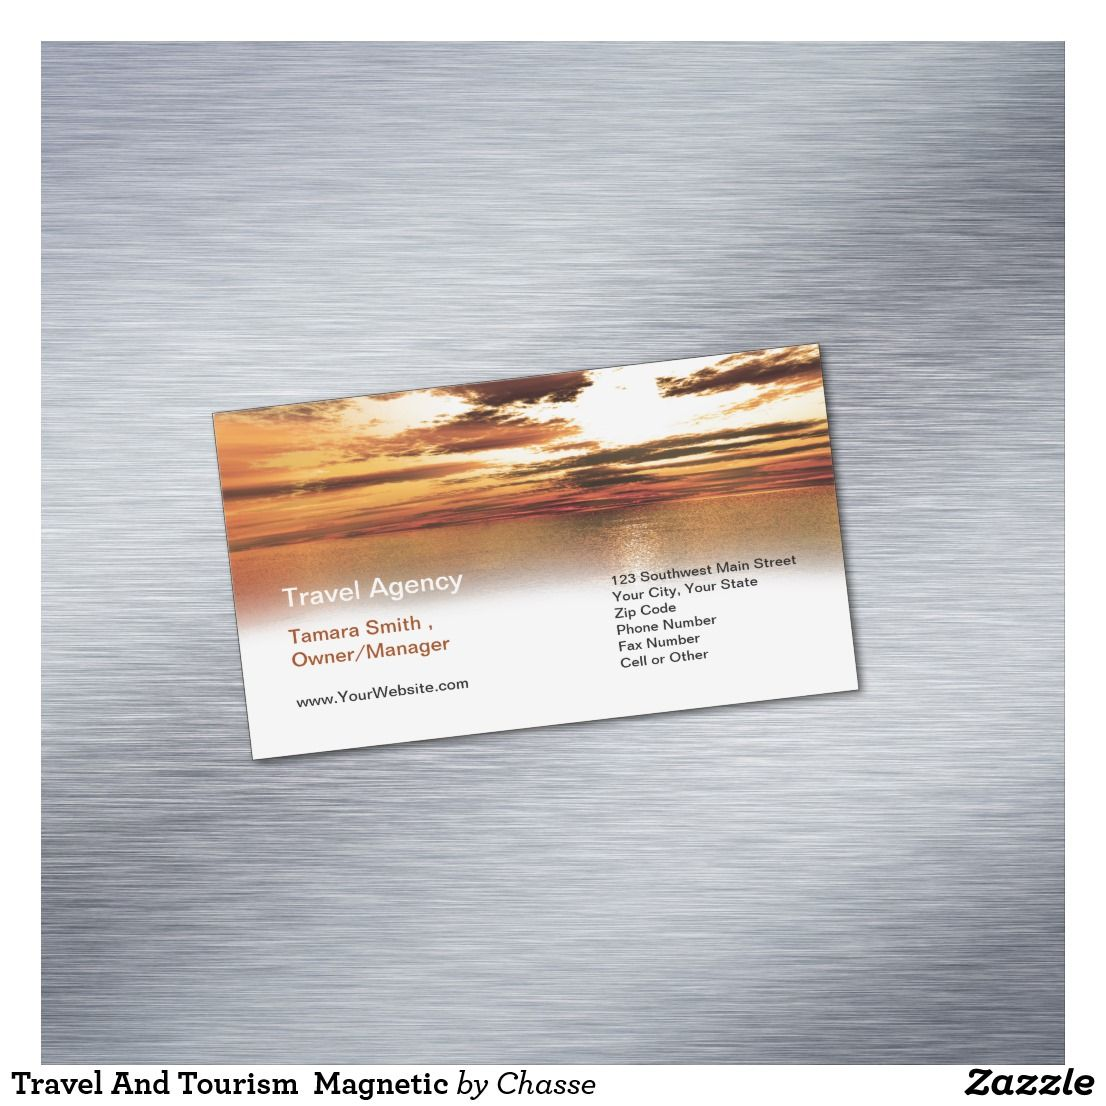 Travel And Tourism Magnetic Business Card Magnet | Guest Pinner ...